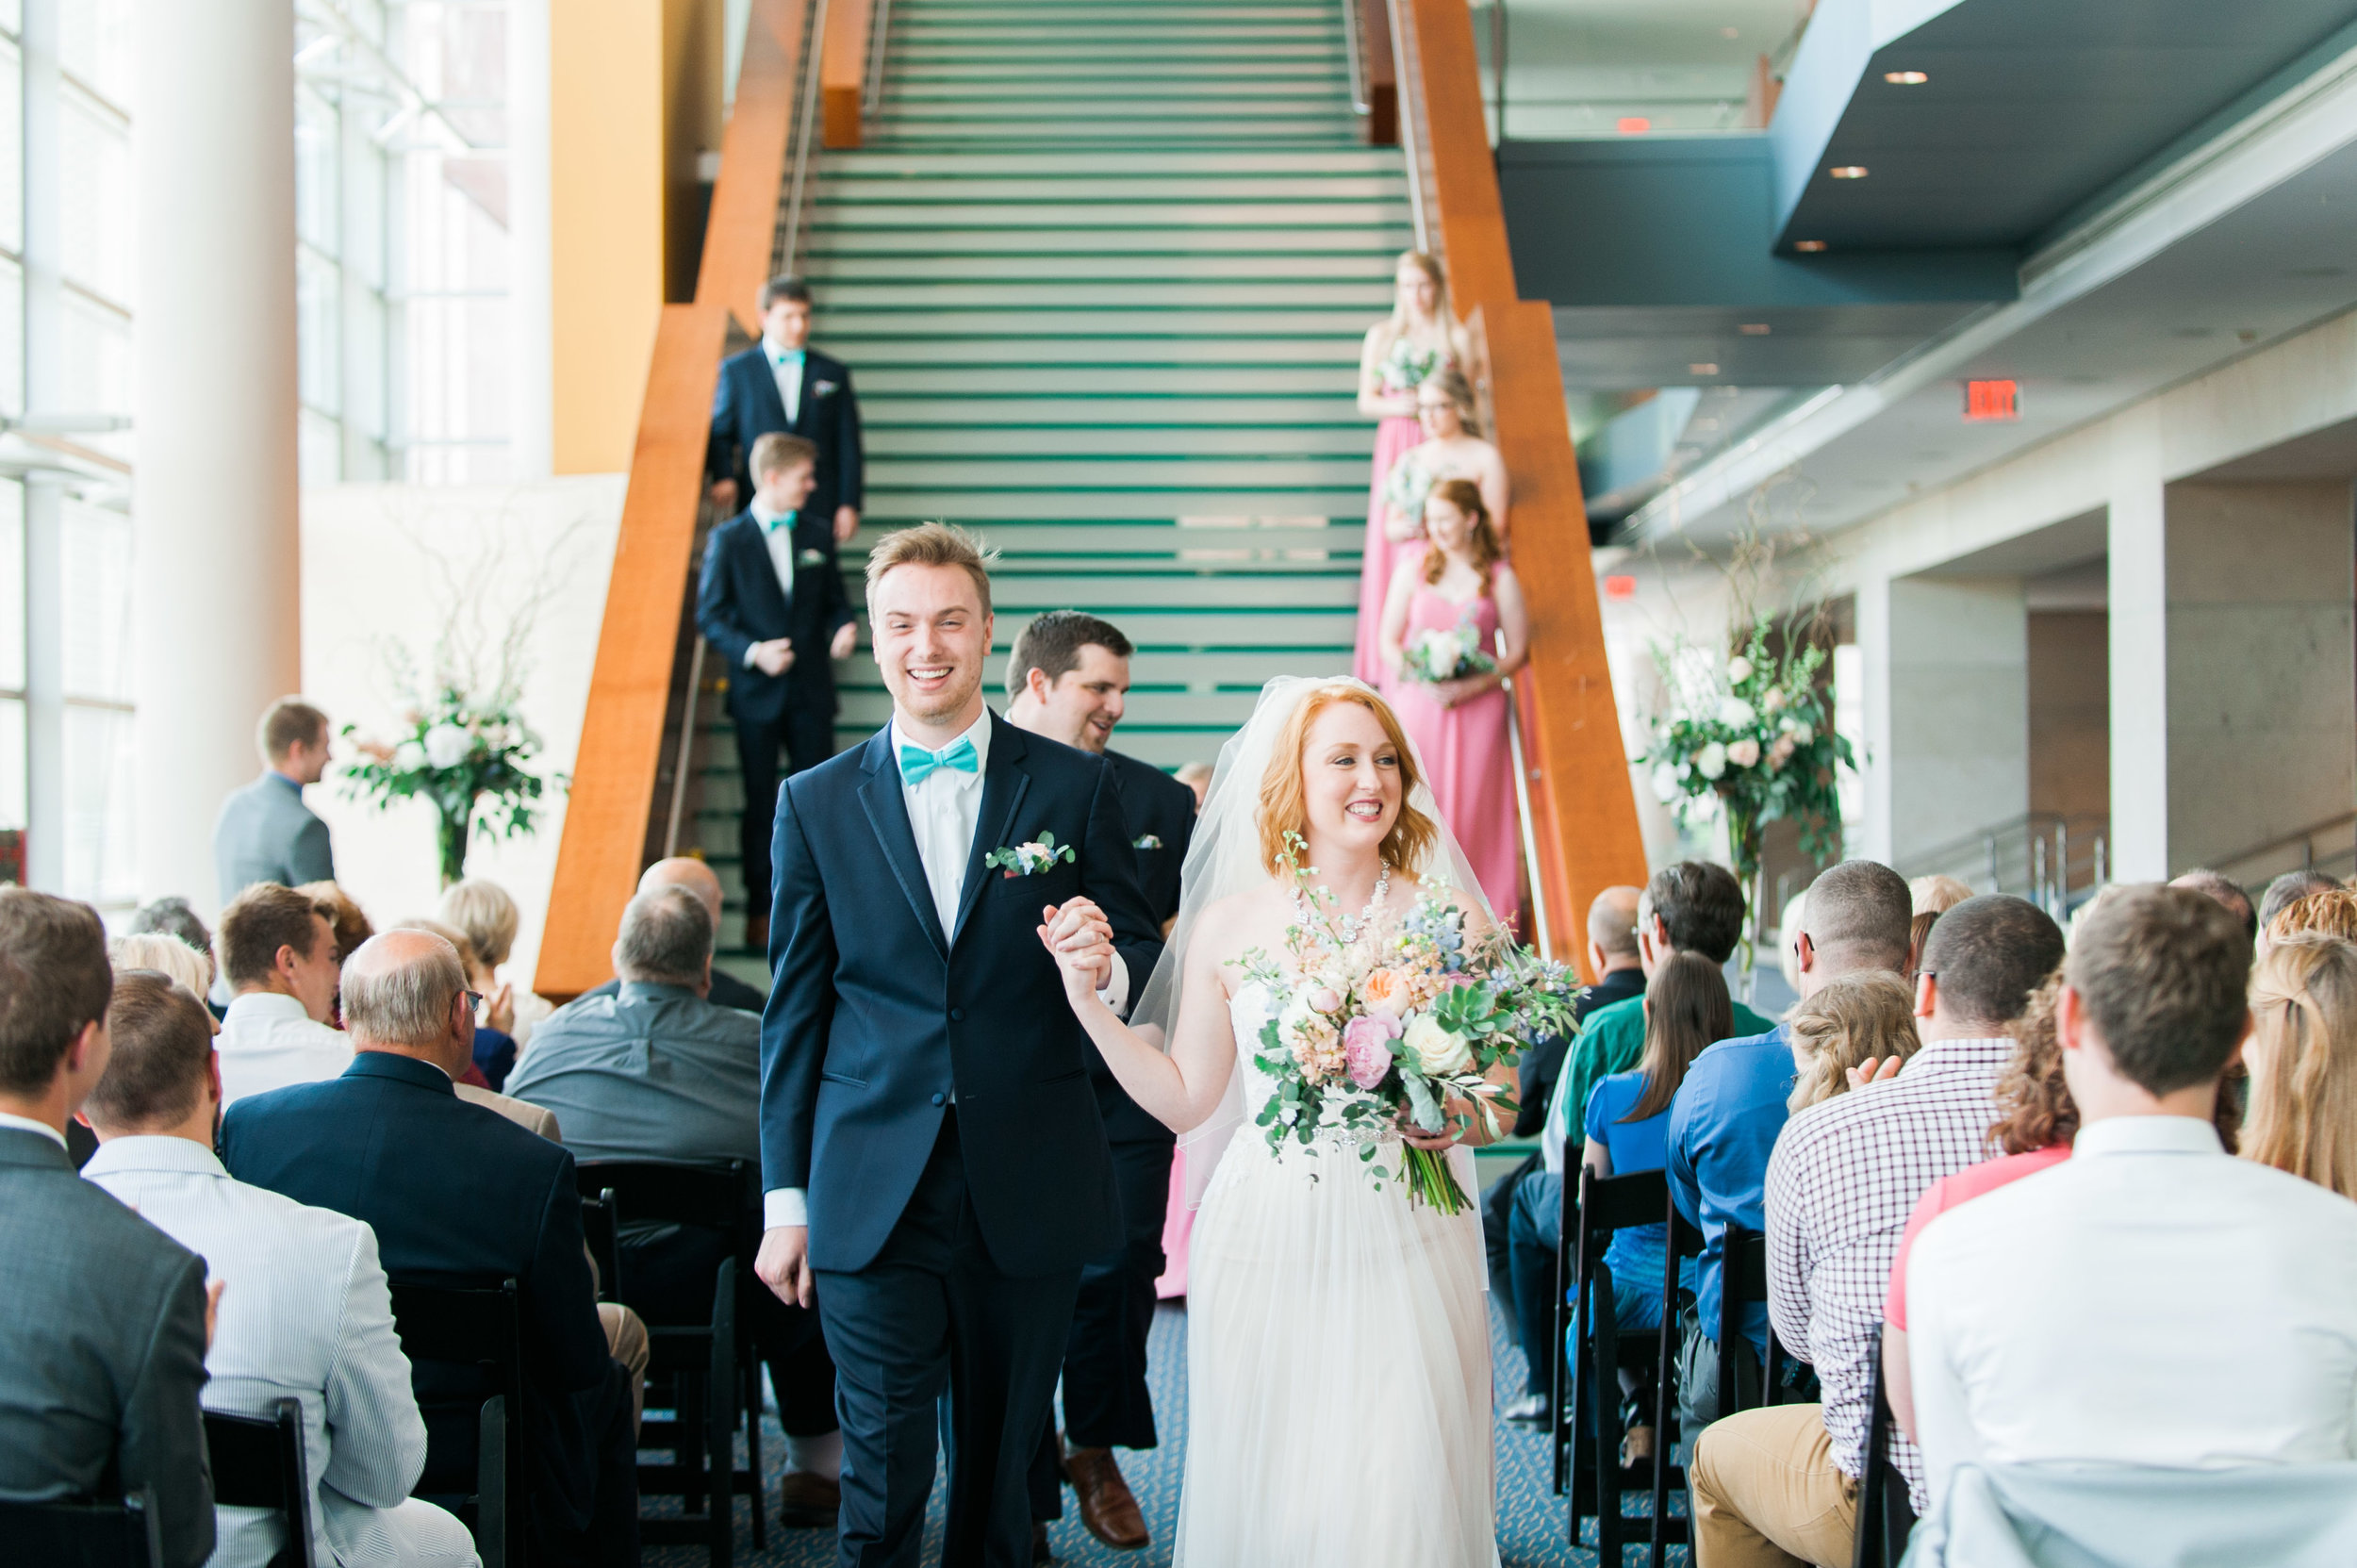 omaha-holland-arts-center-wedding-54.jpg